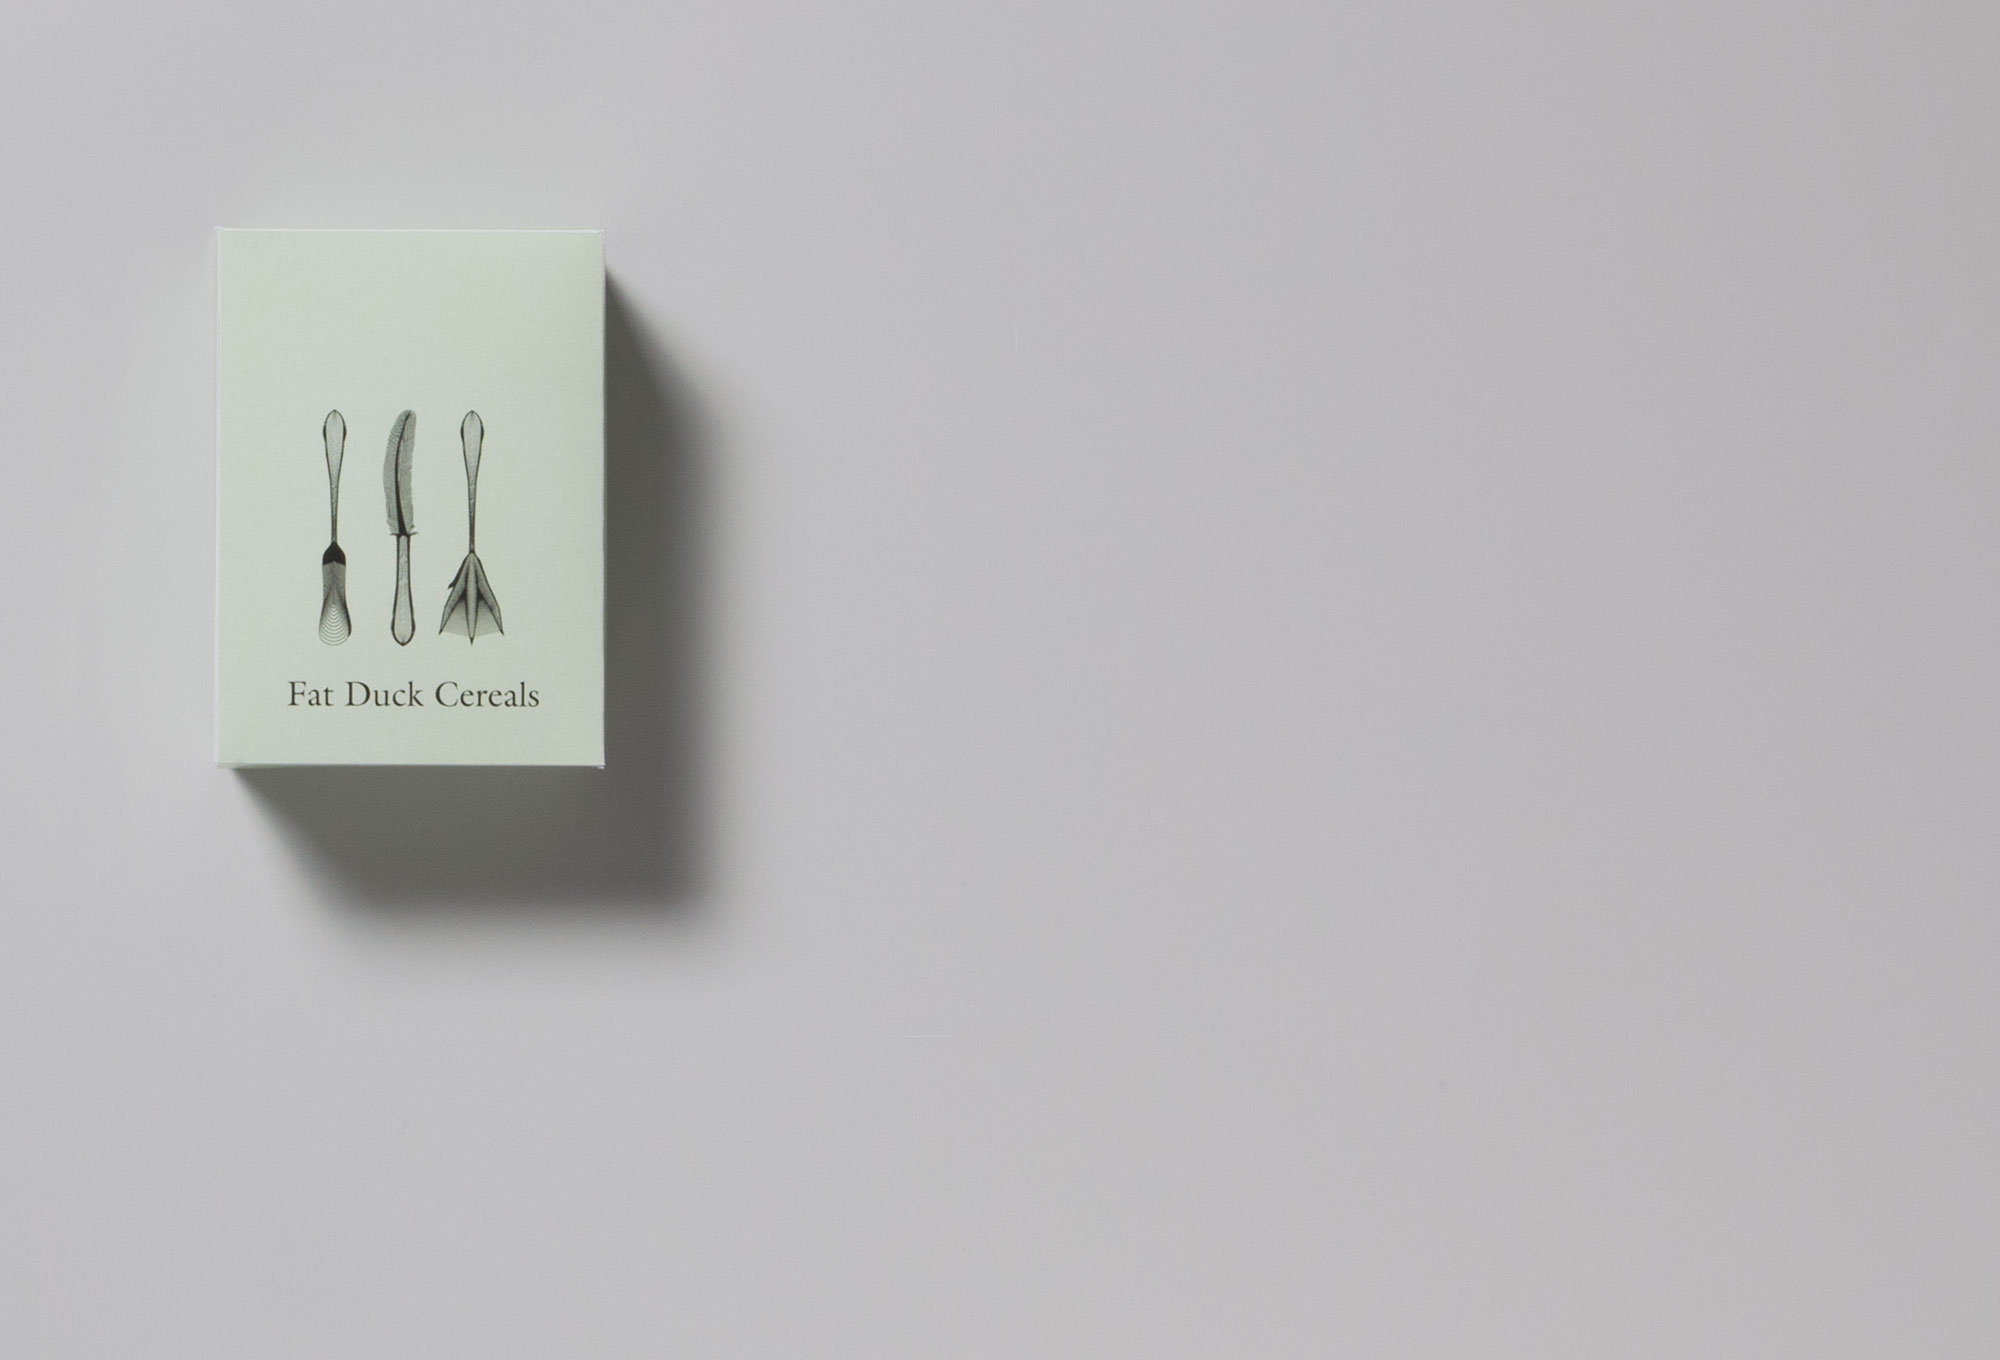 The Fat Duck logo and corporate design.